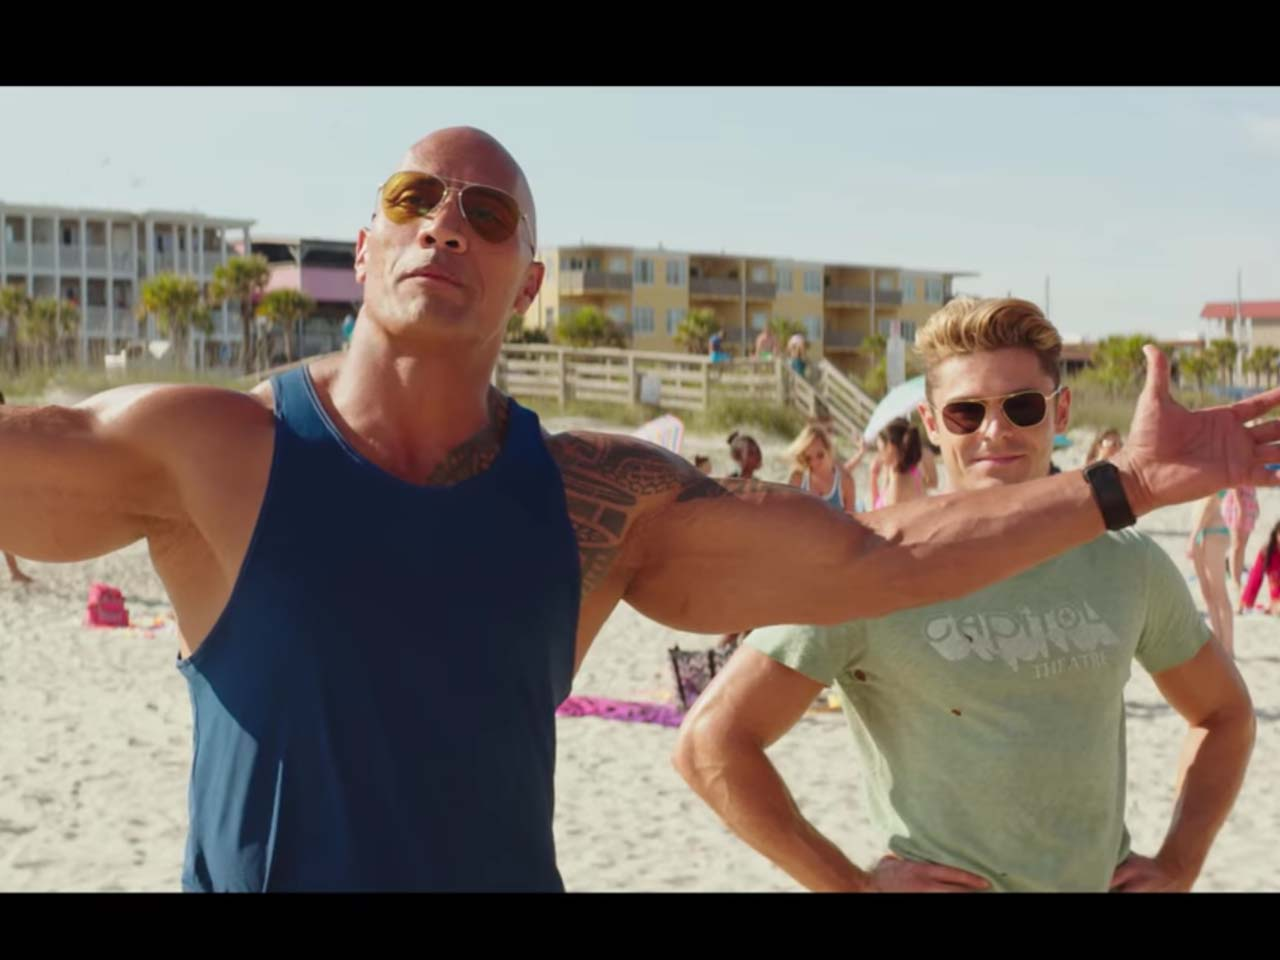 Dwayne Johnson and Zac Efron in 'Baywatch'